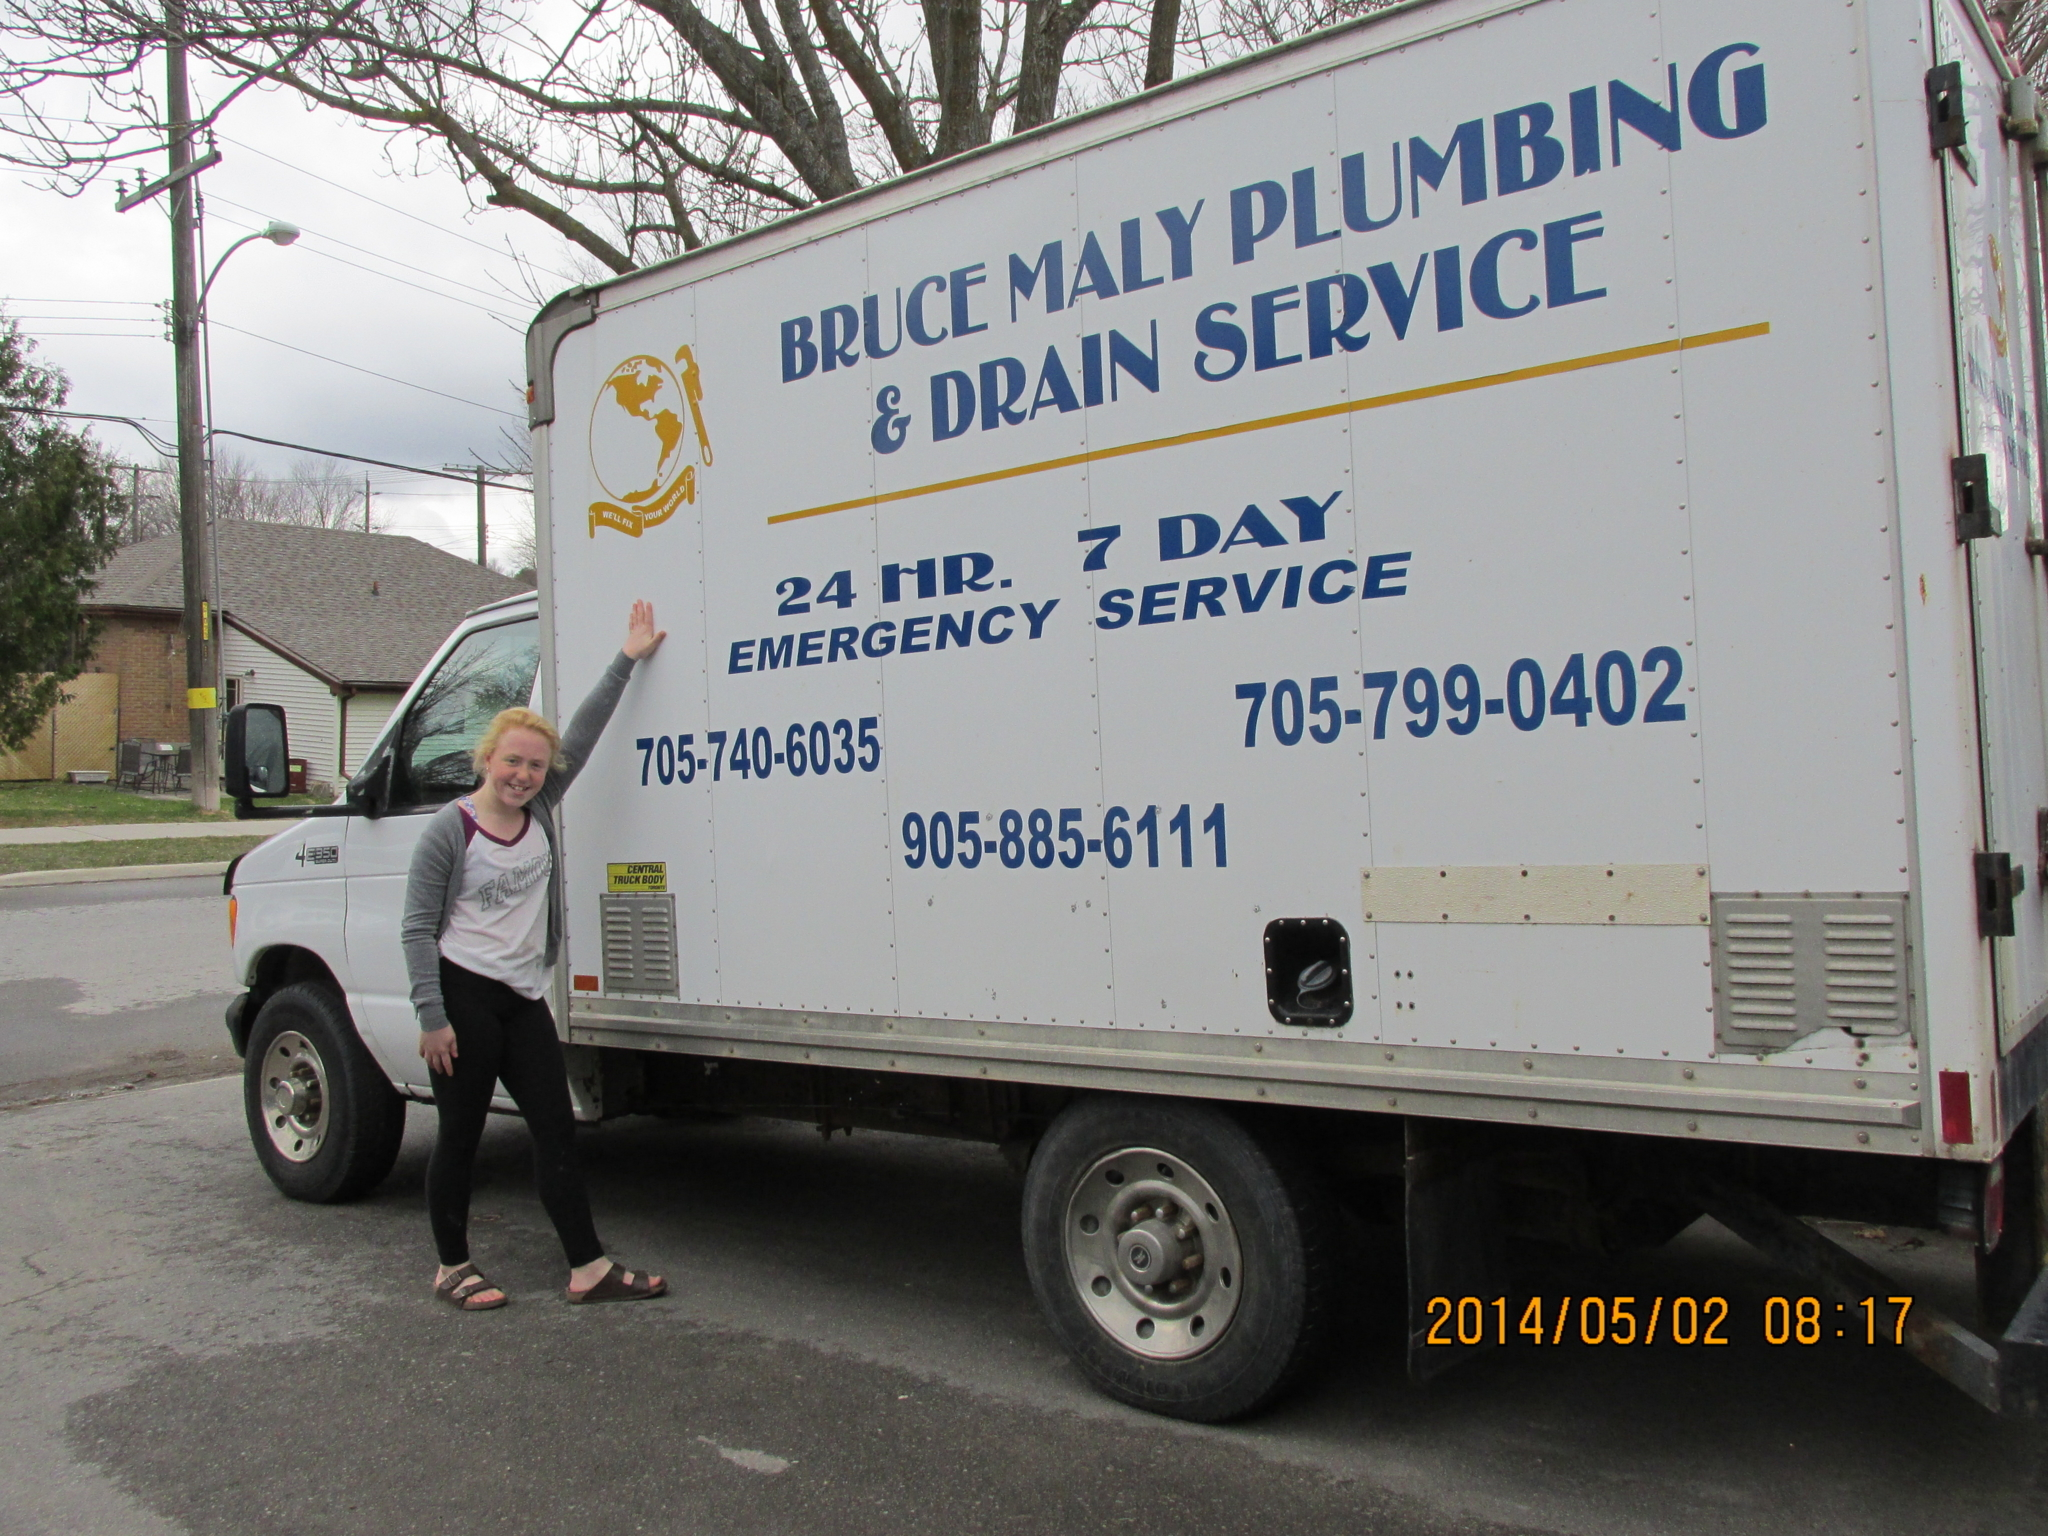 Maly Bruce Plumbing & Drain Services